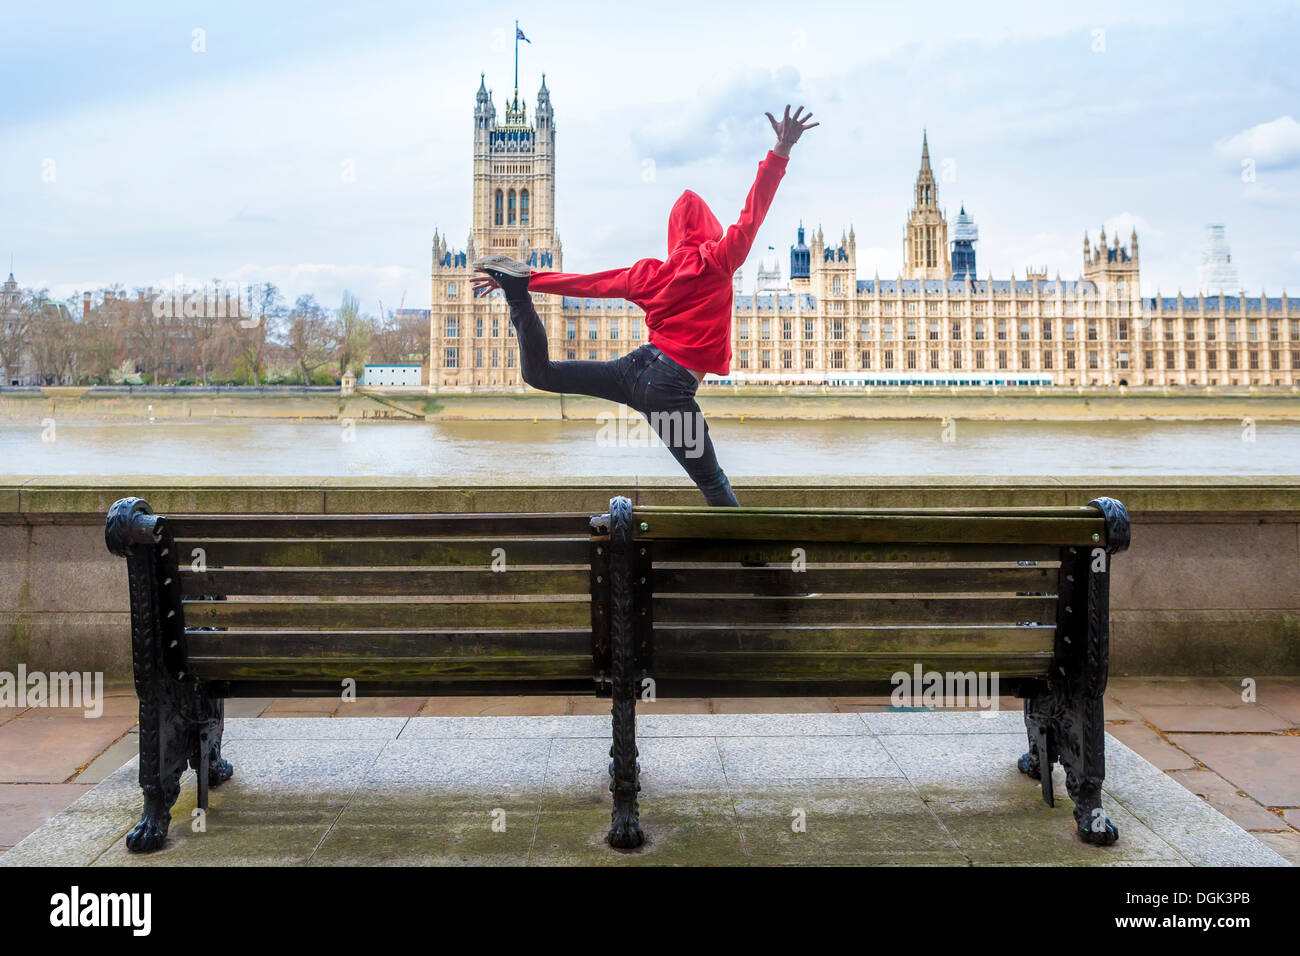 Young male dancer mid air in front of parliament, London, UK - Stock Image